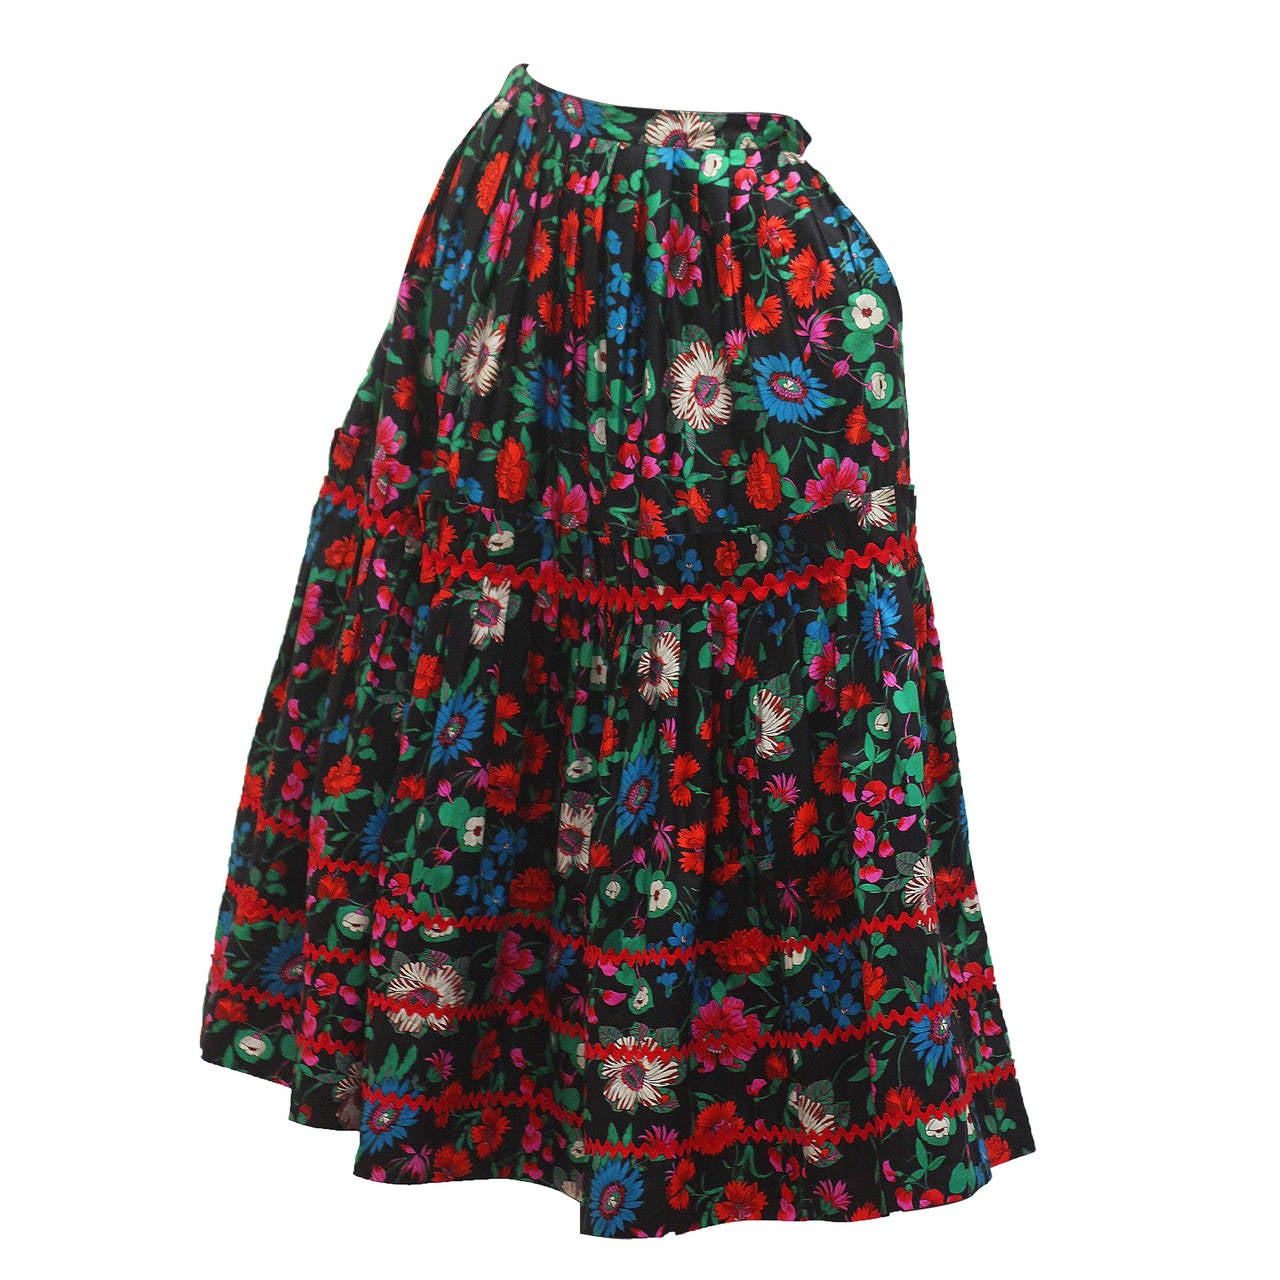 1970s Yves Saint Laurent Floral Gypsy Skirt 1